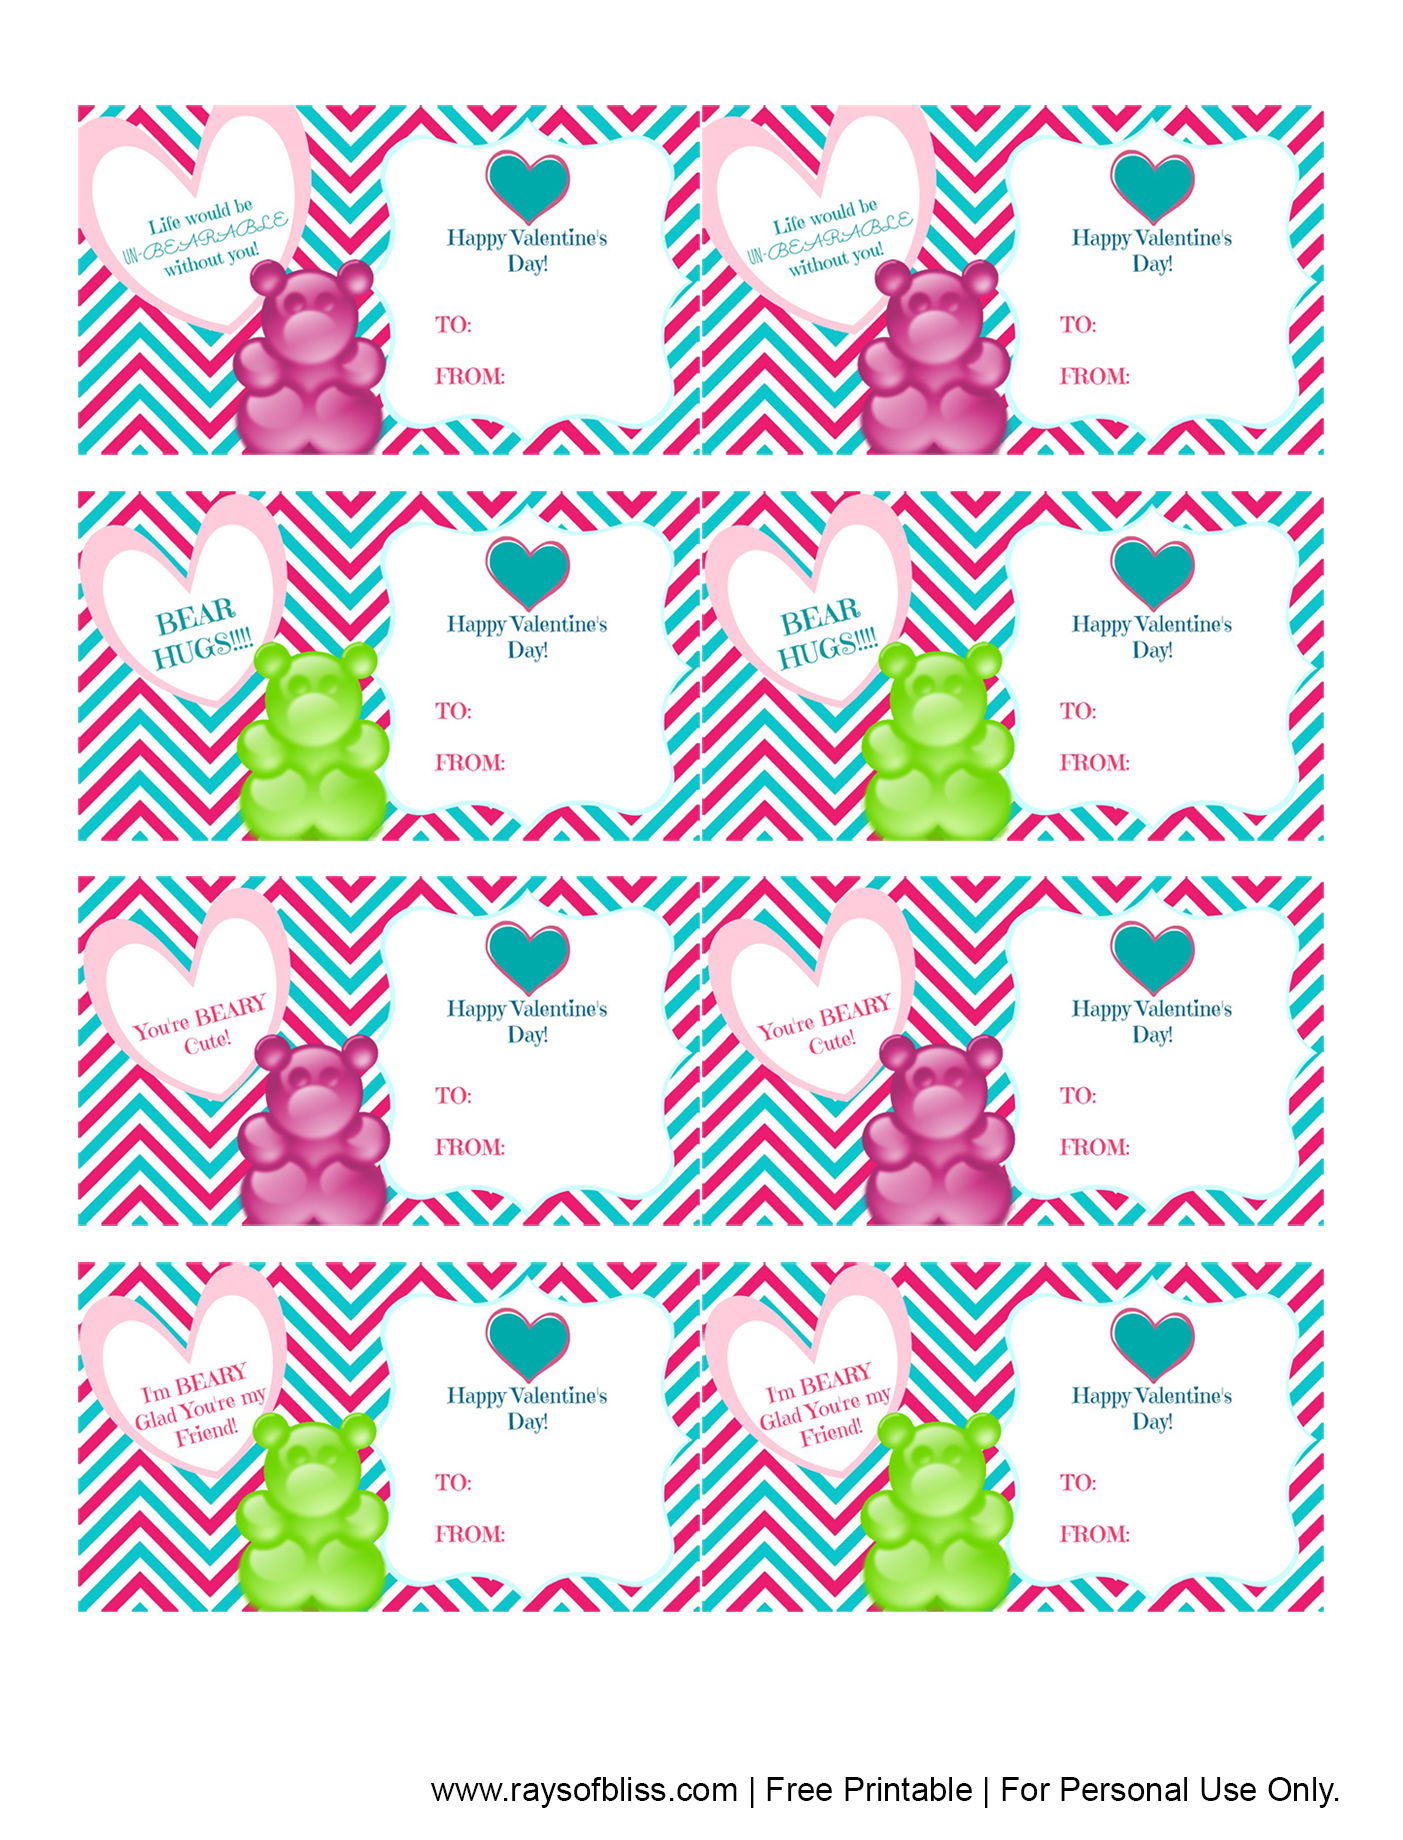 photo regarding Gummy Bear Printable called No cost Printable Gummy Endure Valentines Working day Playing cards - Rays of Bliss